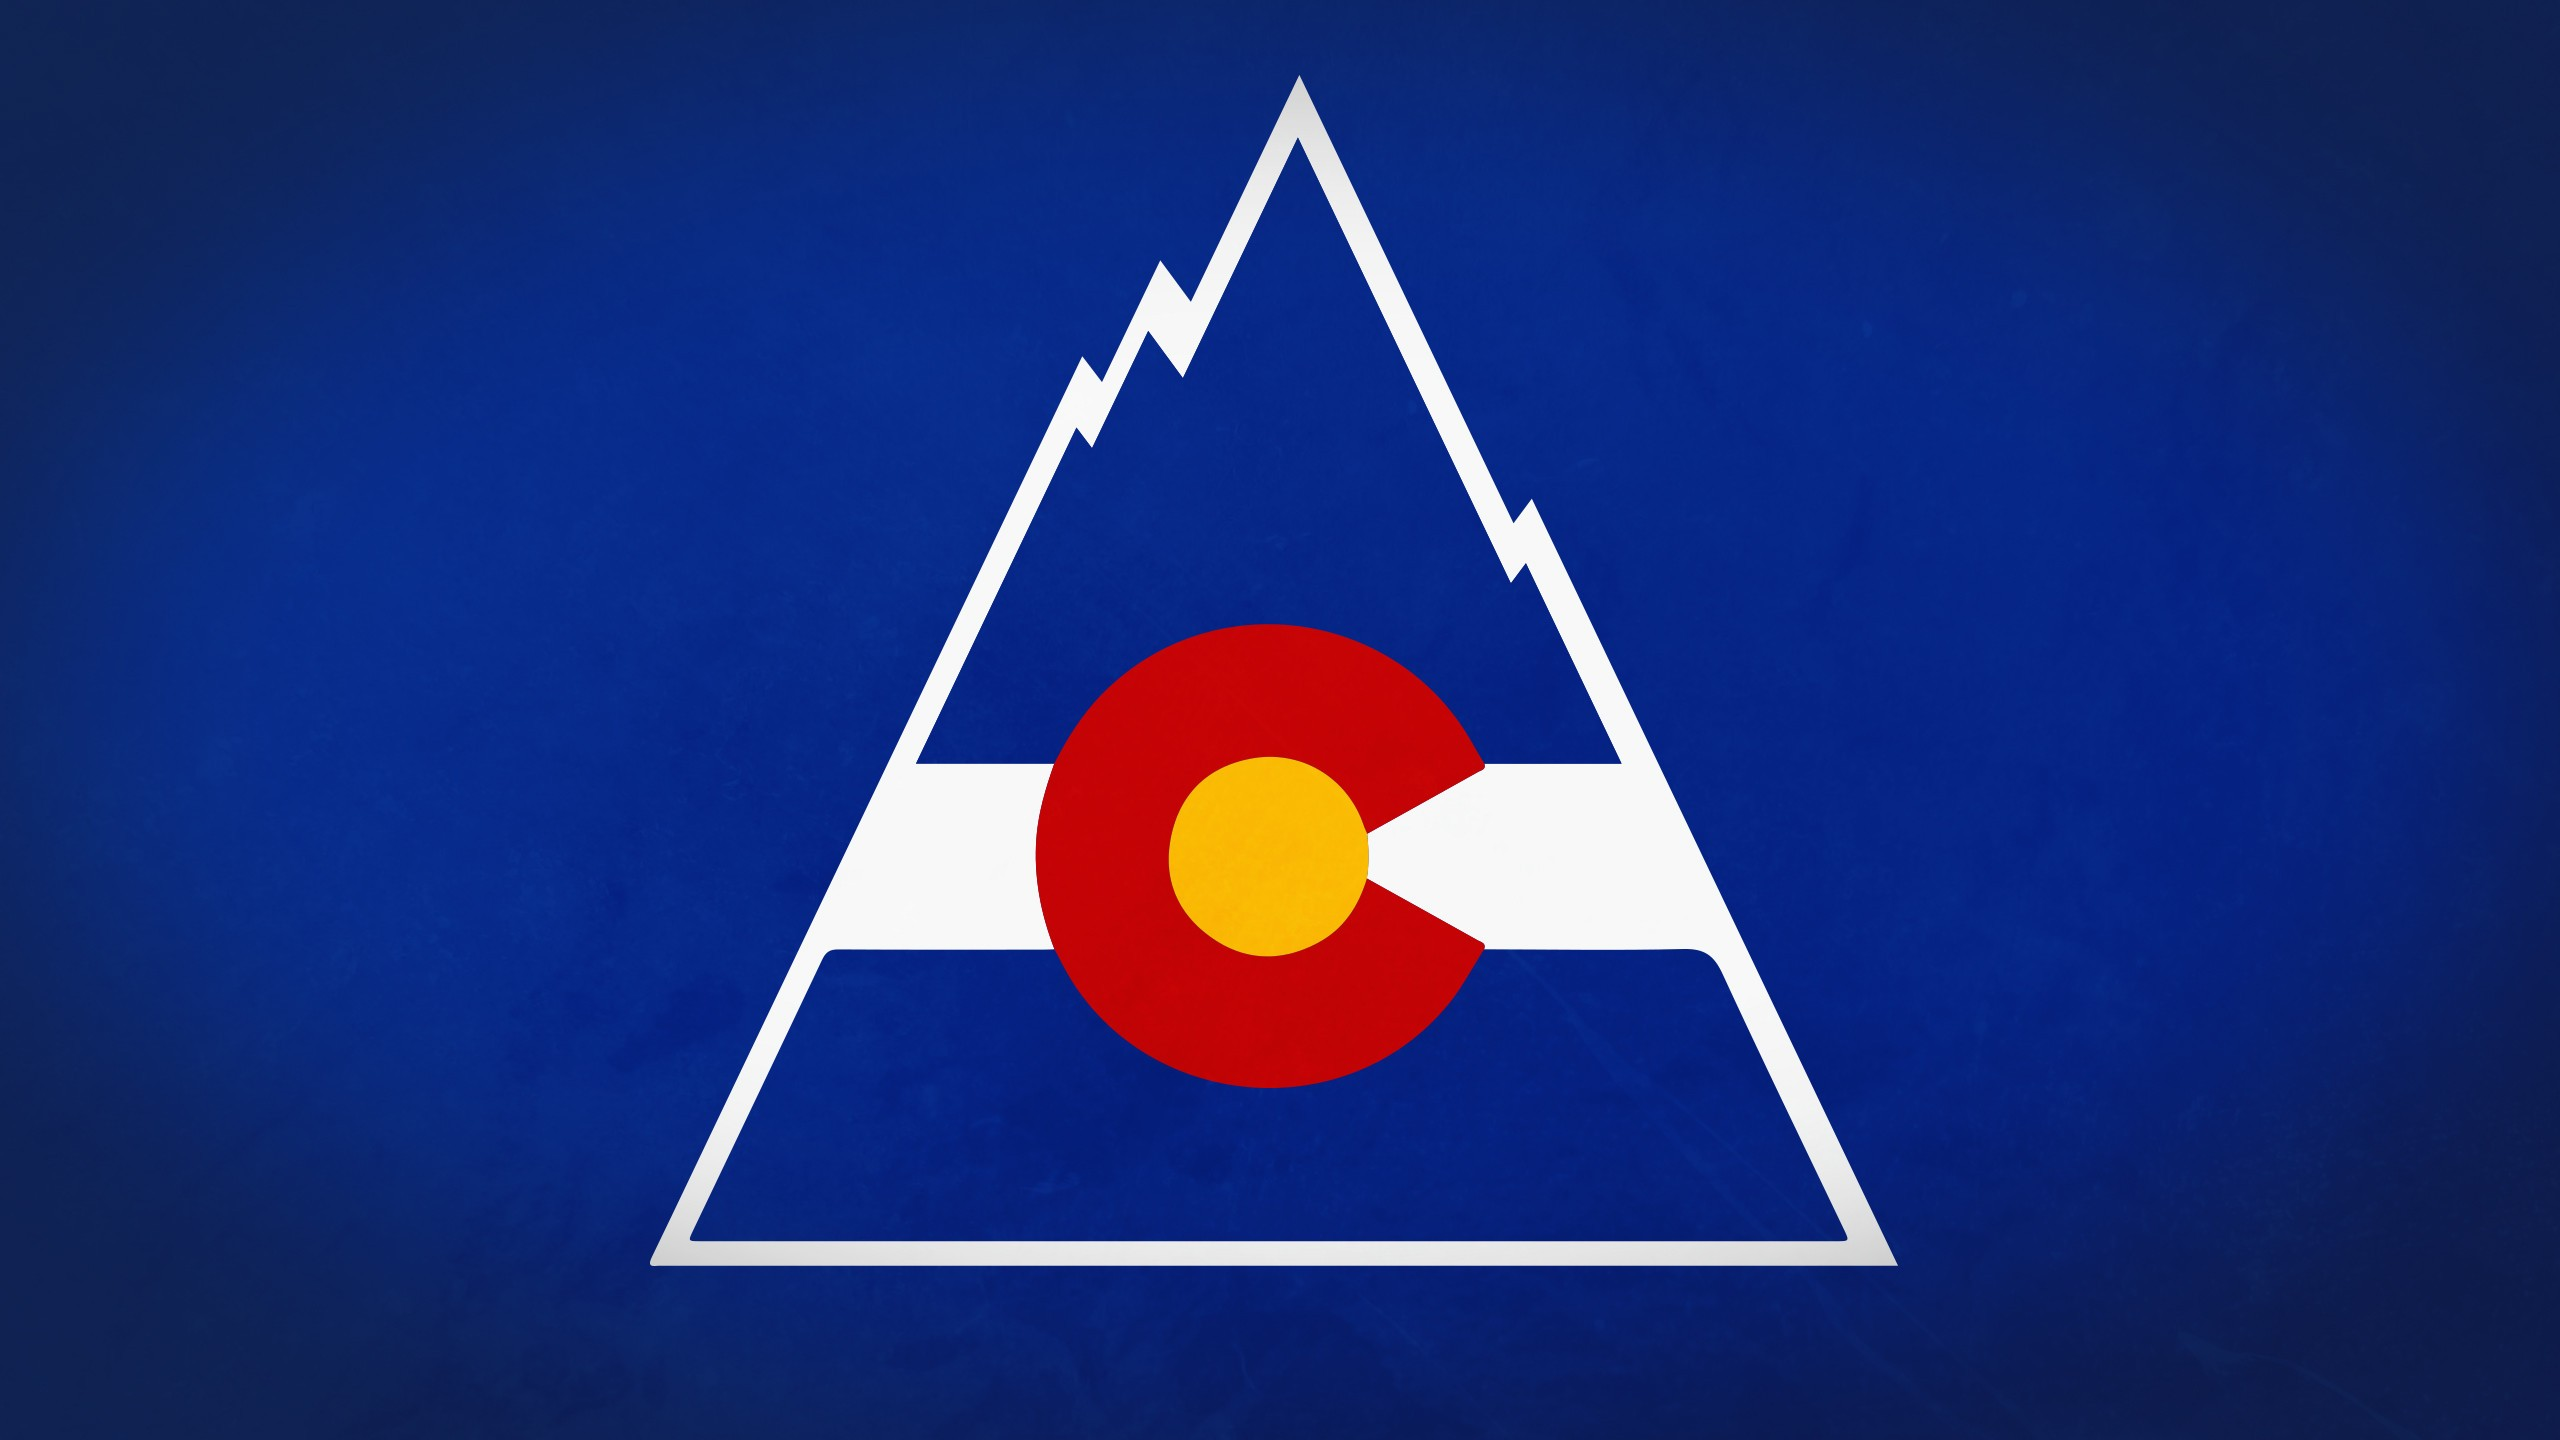 Colorado Avalanche Iphone Wallpaper Colorado Rockies Full Hd Wallpaper And Background Image